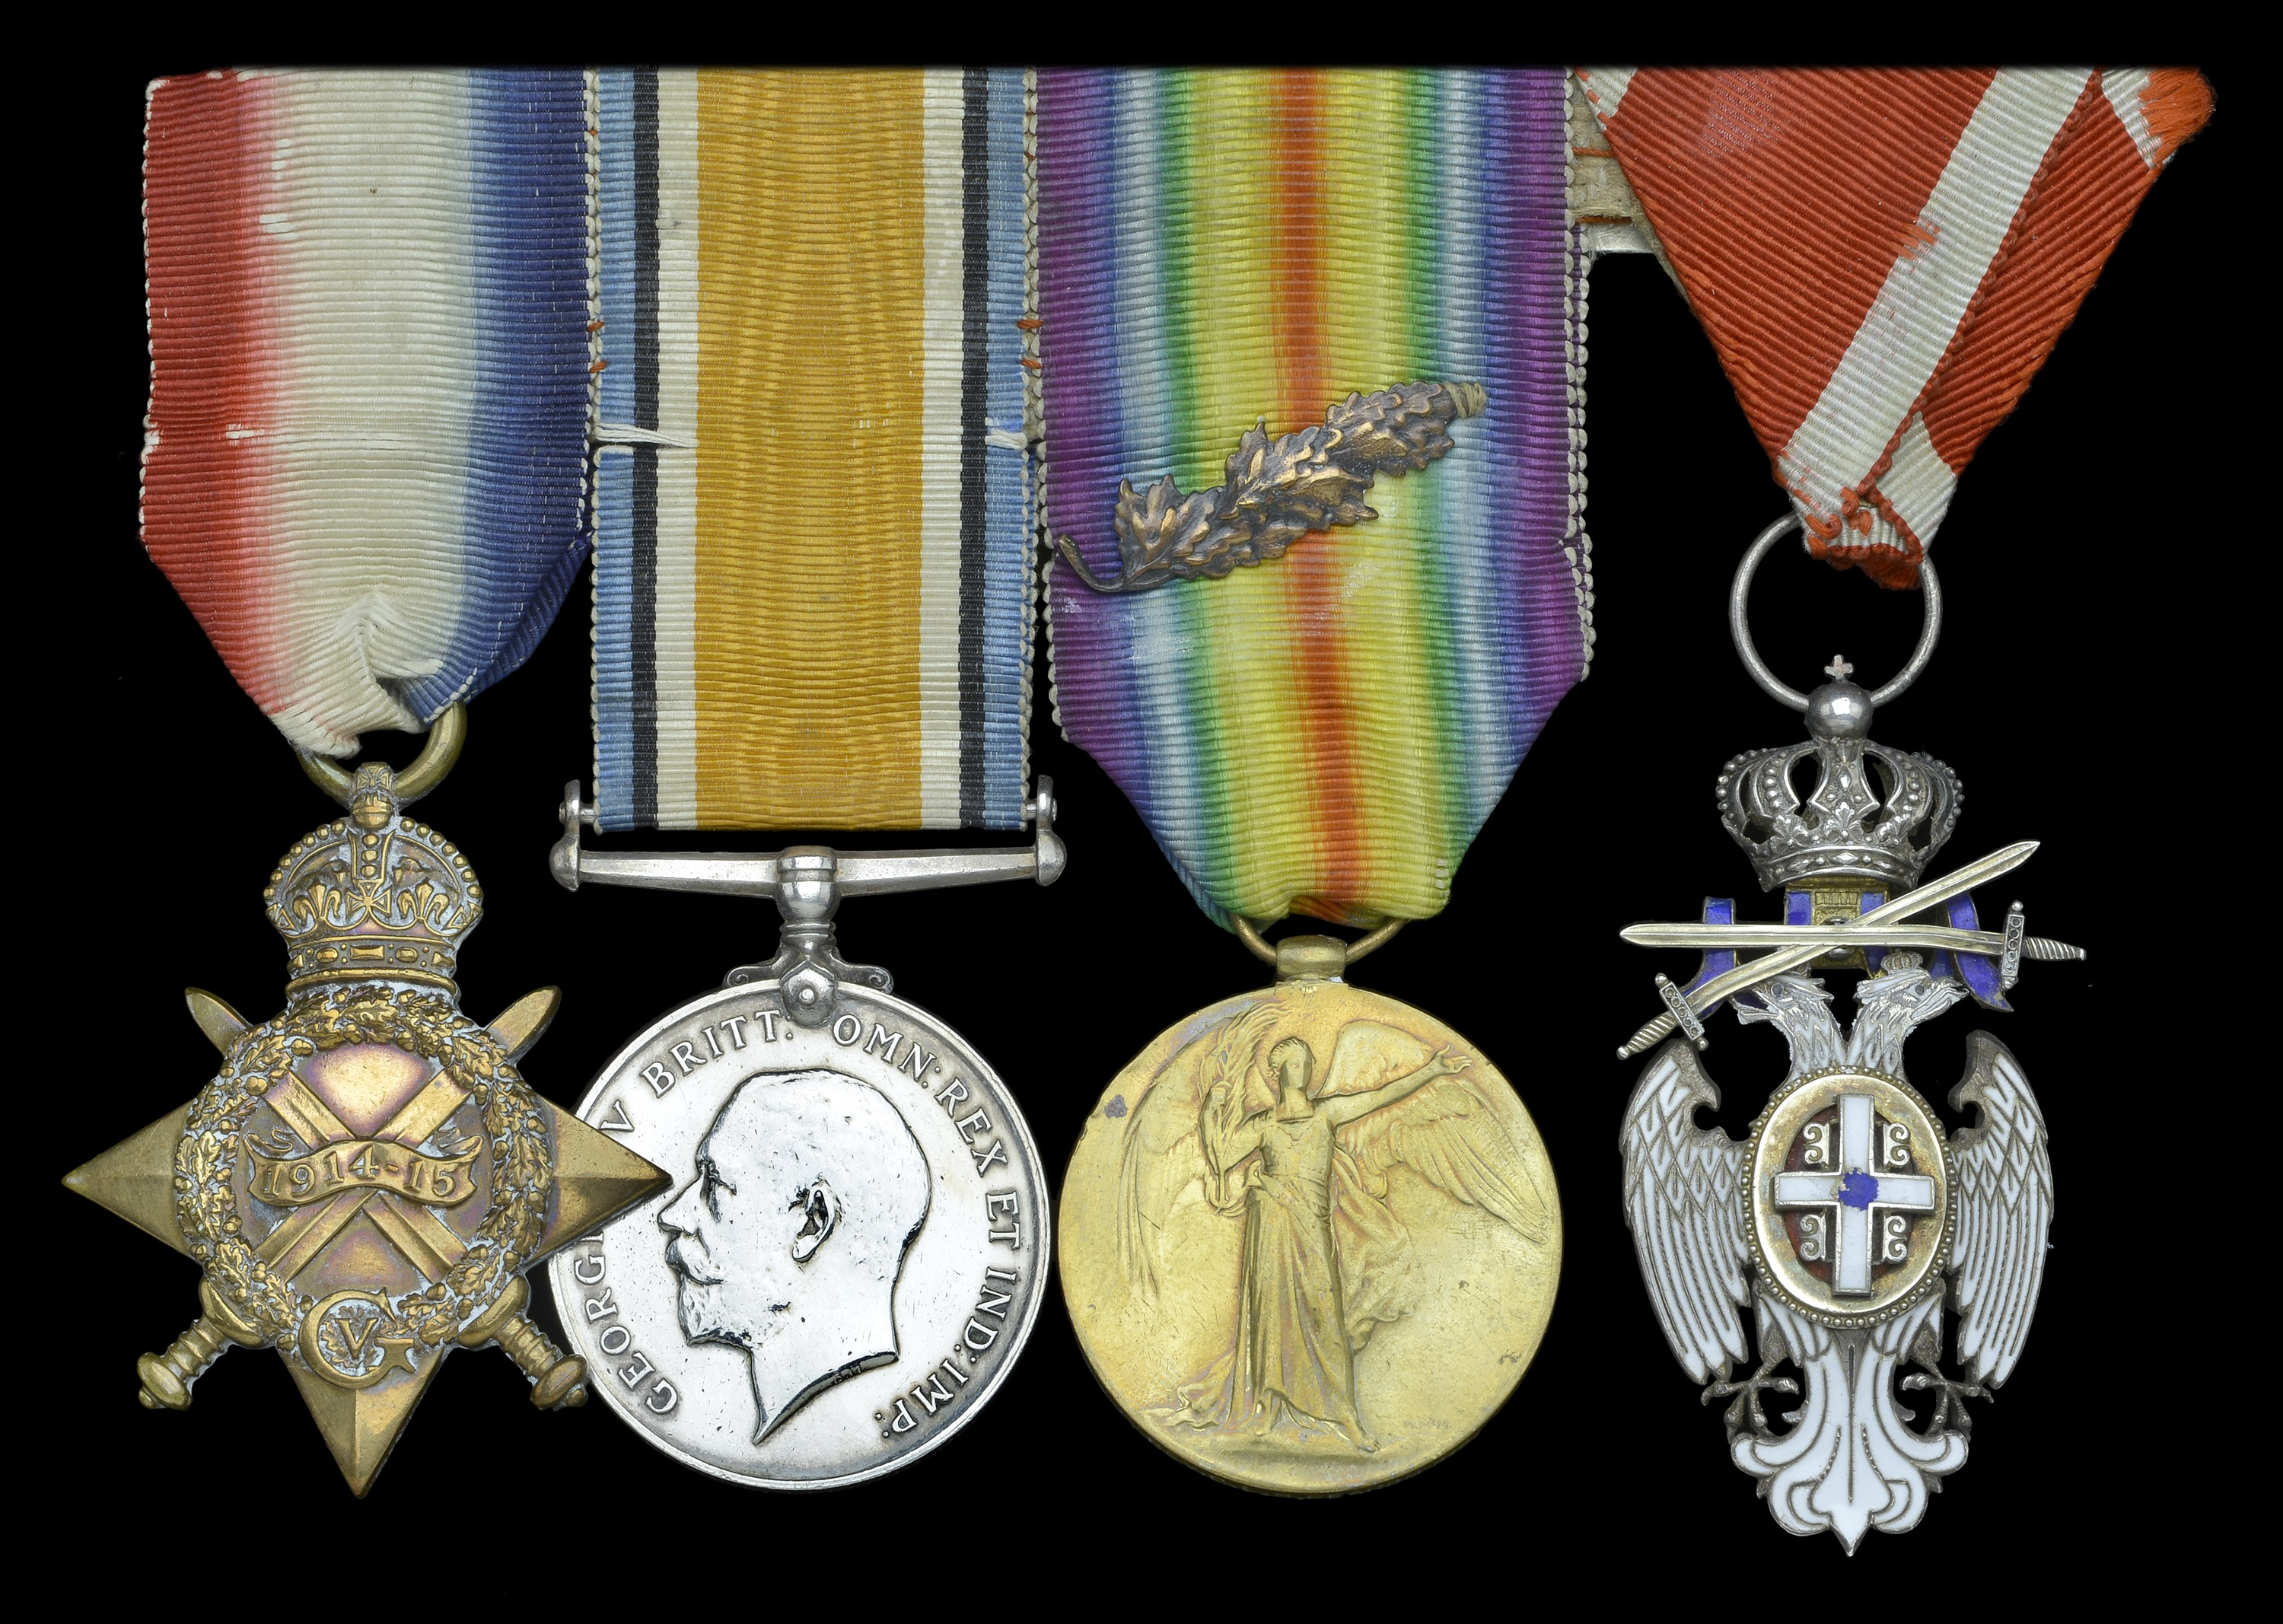 Lot 737 - A Collection of Awards to Chaplains Formed by Philip Mussell - Part I